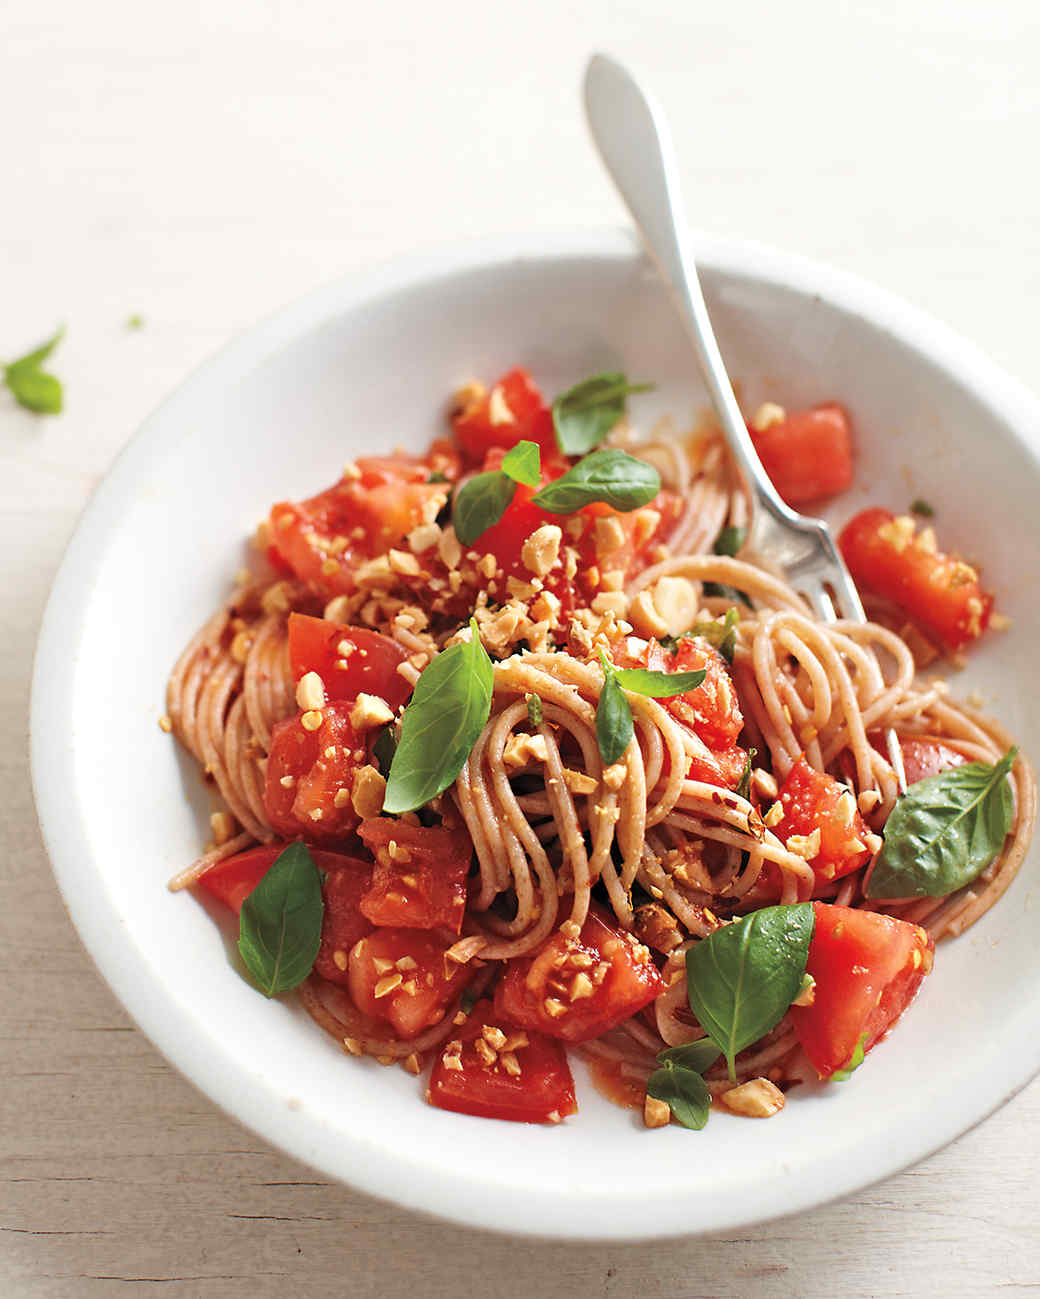 Farro Spaghetti With Fresh Tomatoes and Marcona Almonds